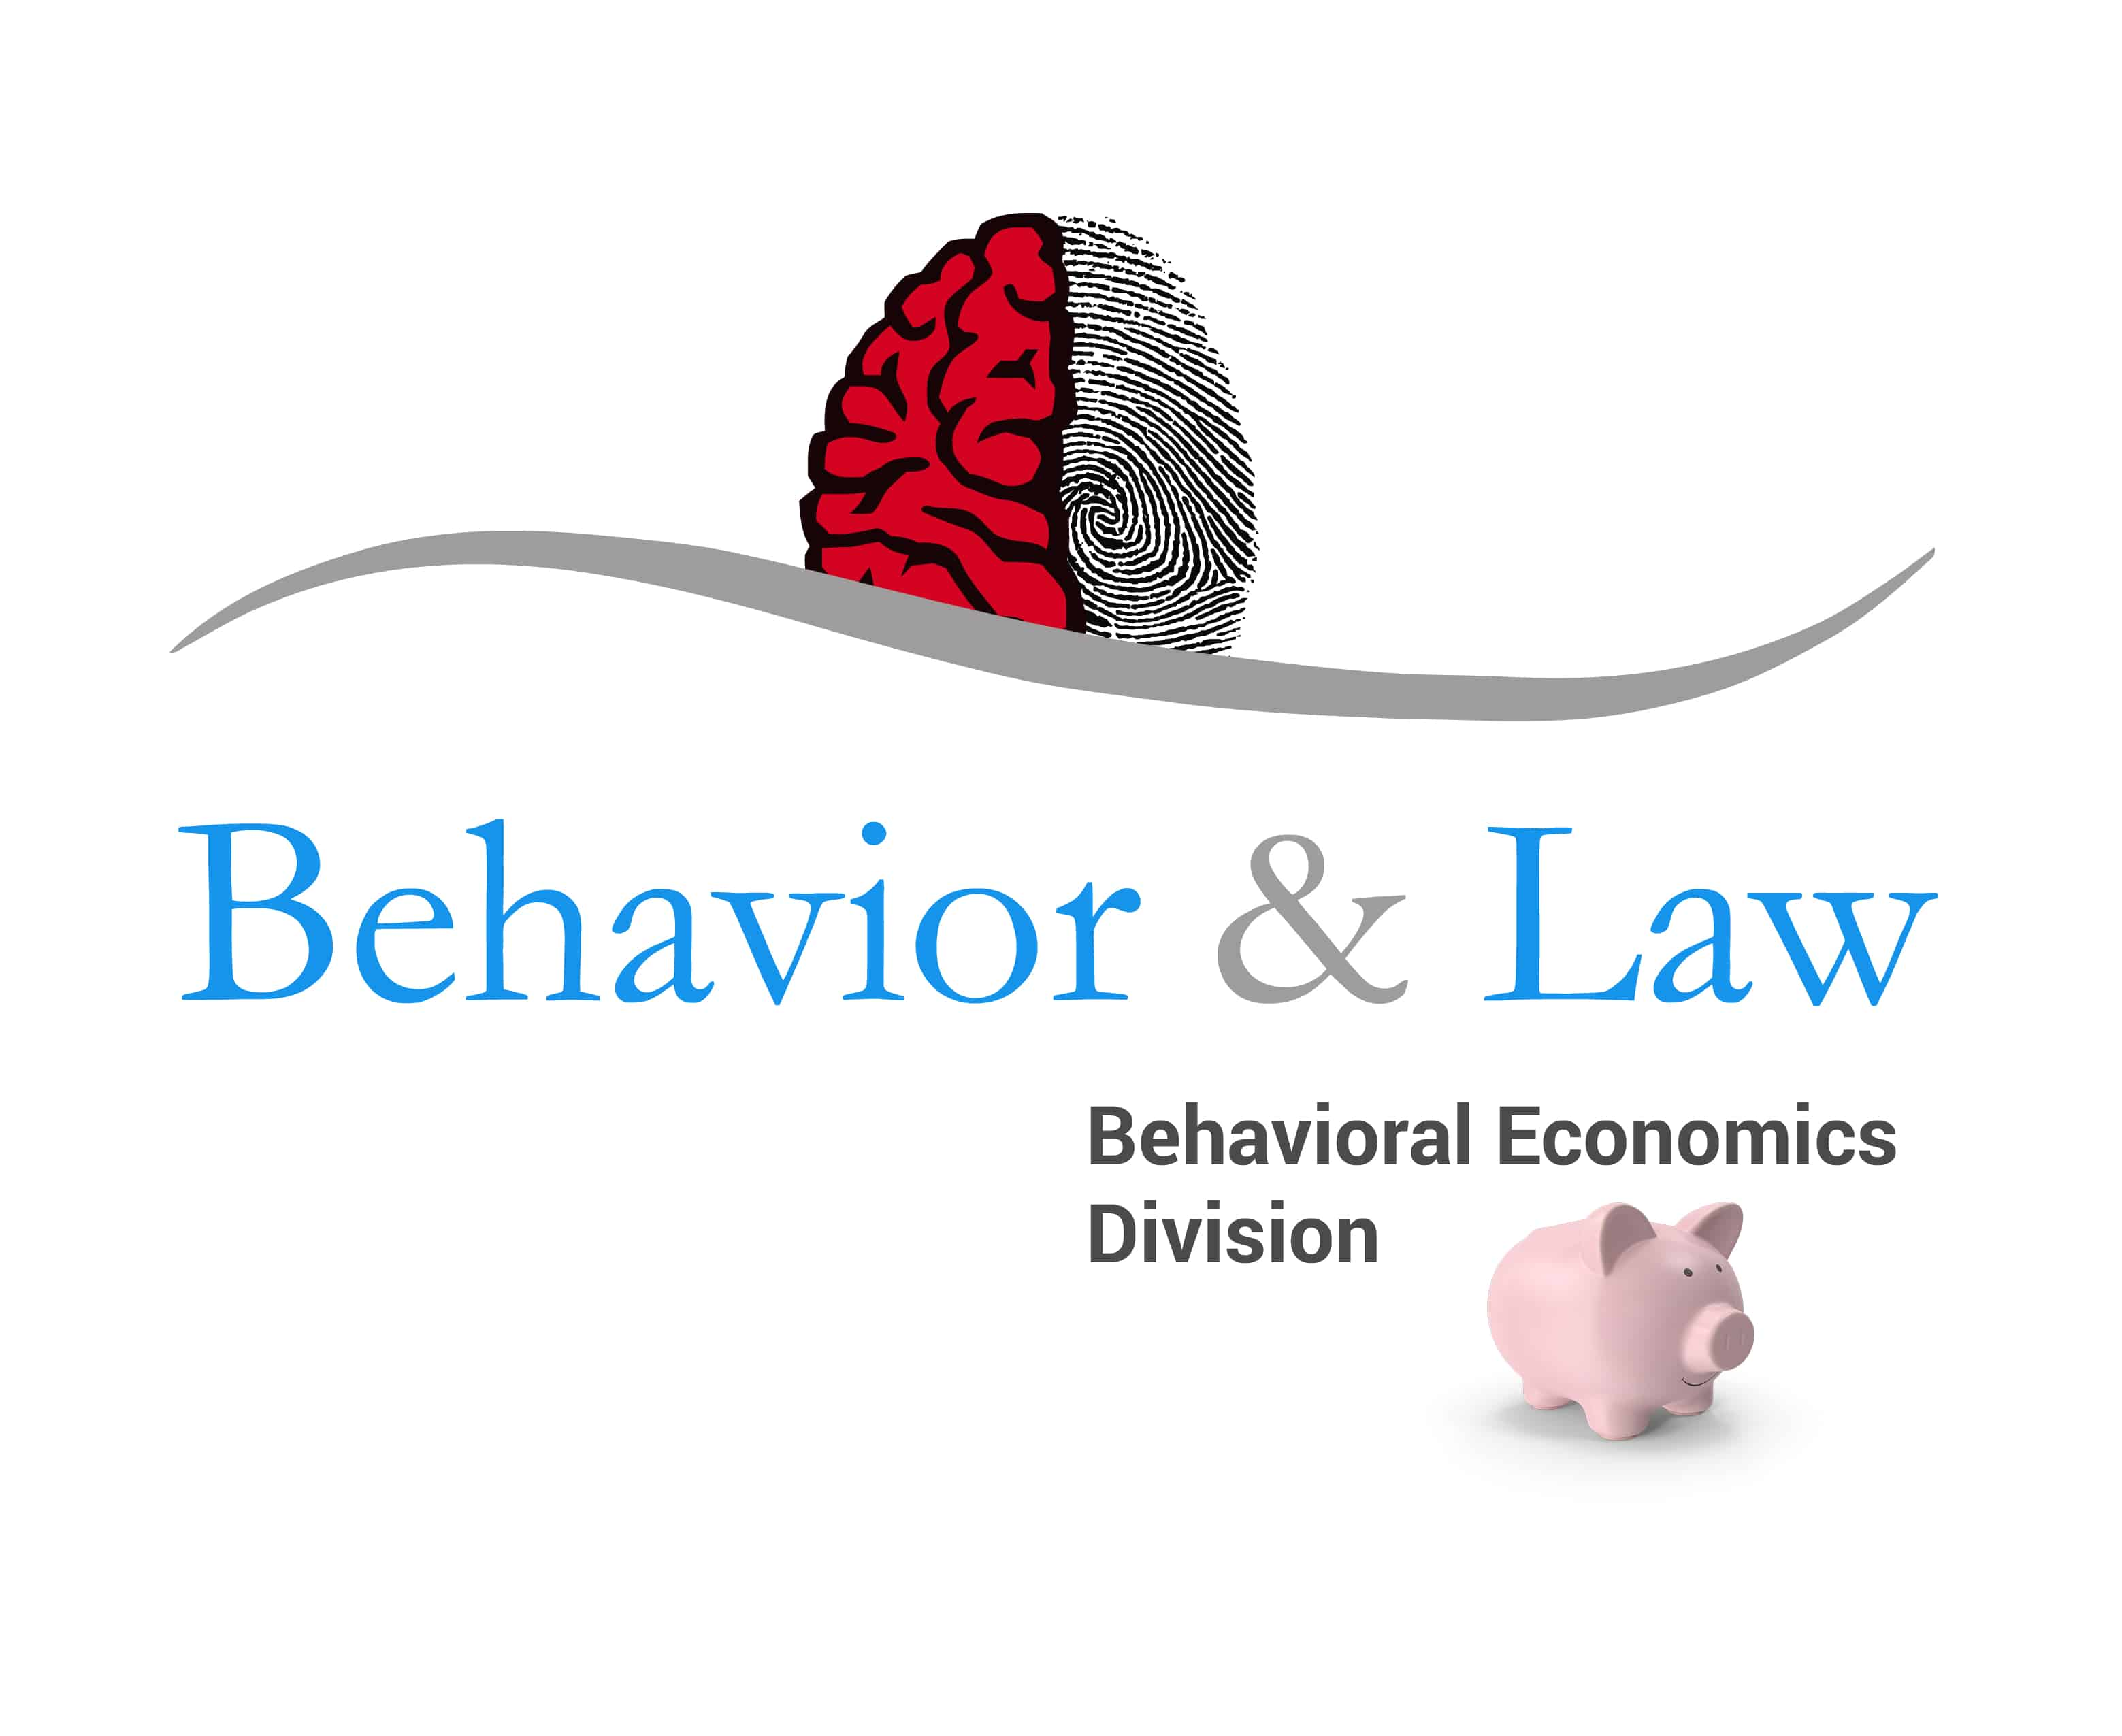 , Decisiones estratégicas: diferencias comportamentales entre CEOs y otros profesionales. Behavioral Economics